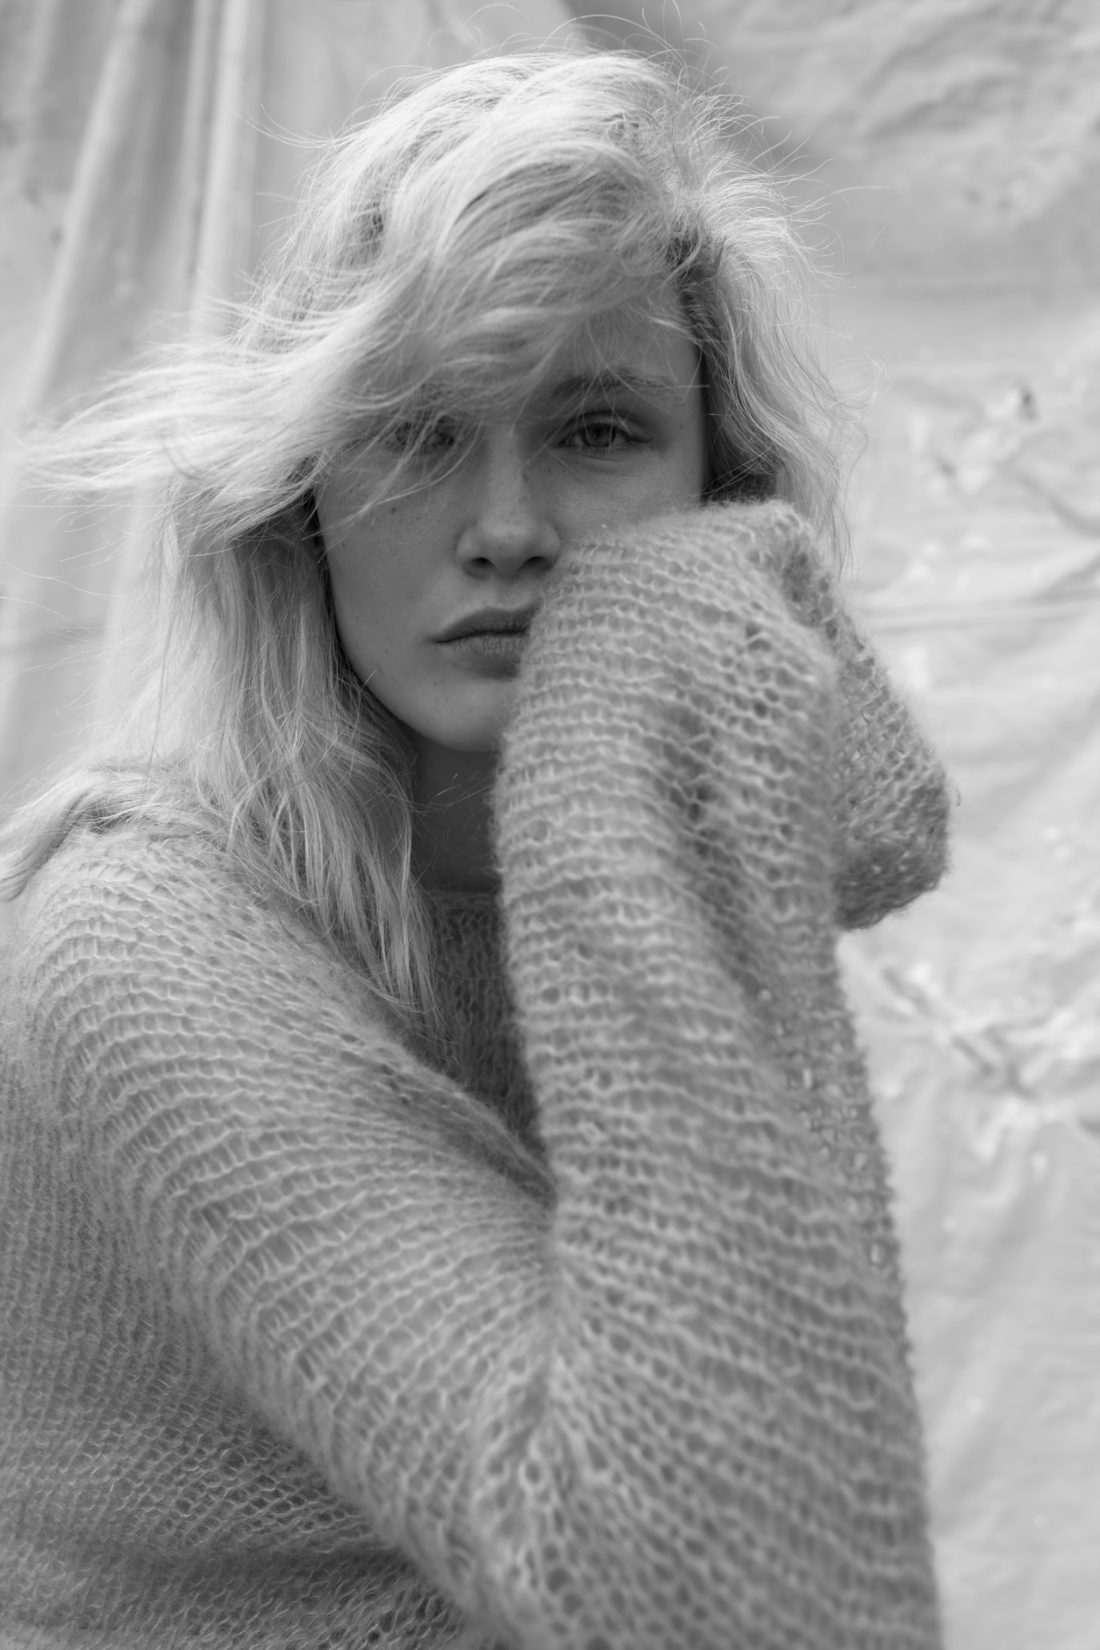 Polly photographed by Claire Hart for Intent Journal